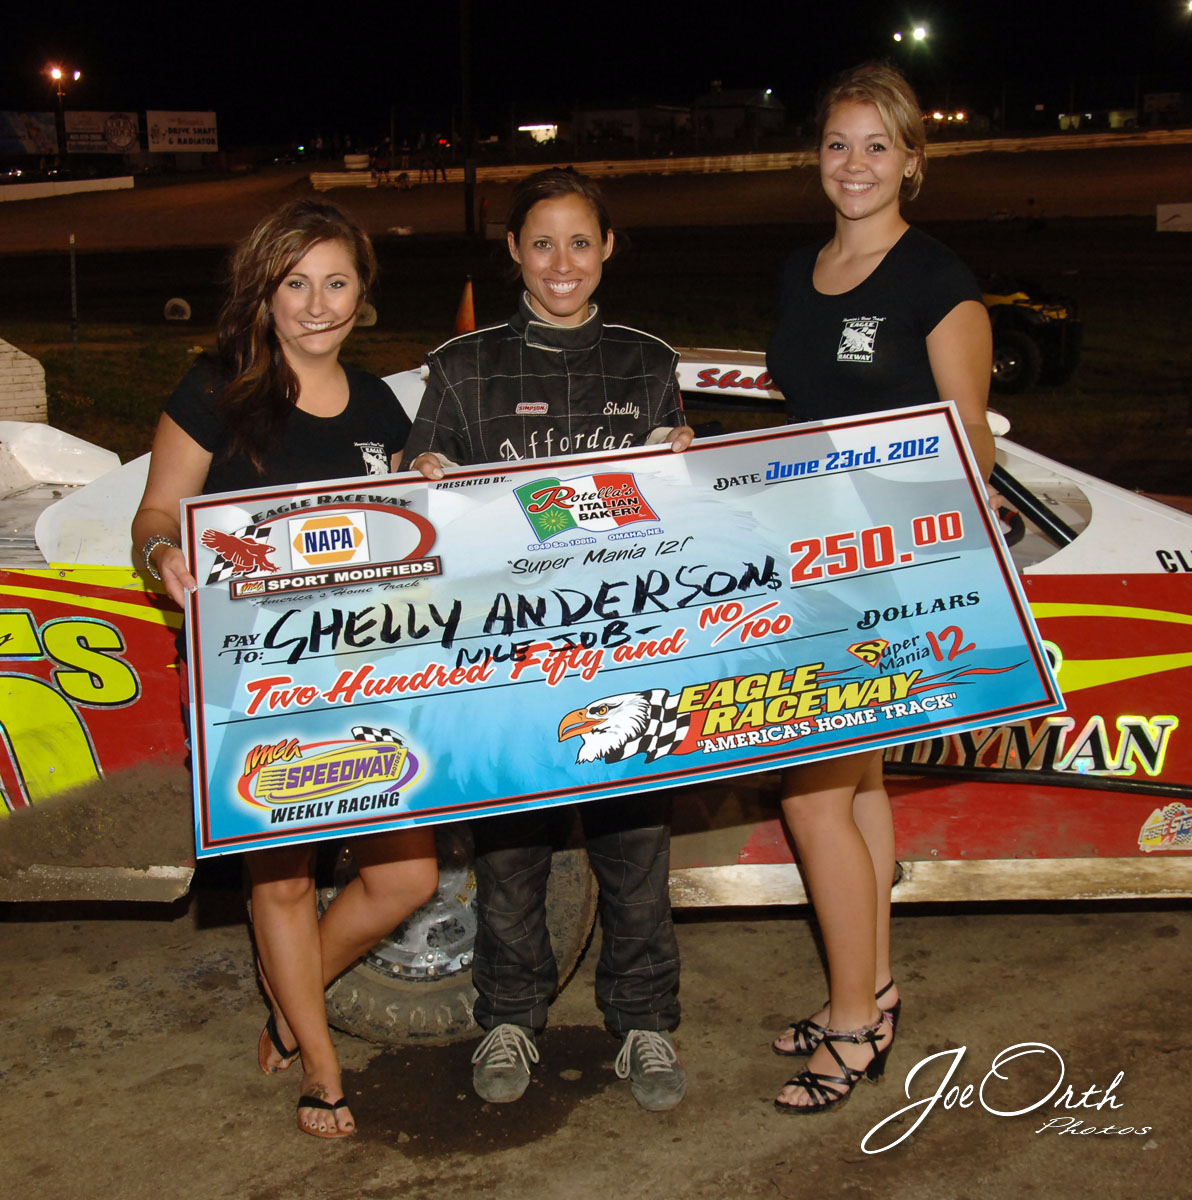 eagle-06-23-12-437-shelly-anderson-with-jamie-kromberg-and-lindsey-flodman